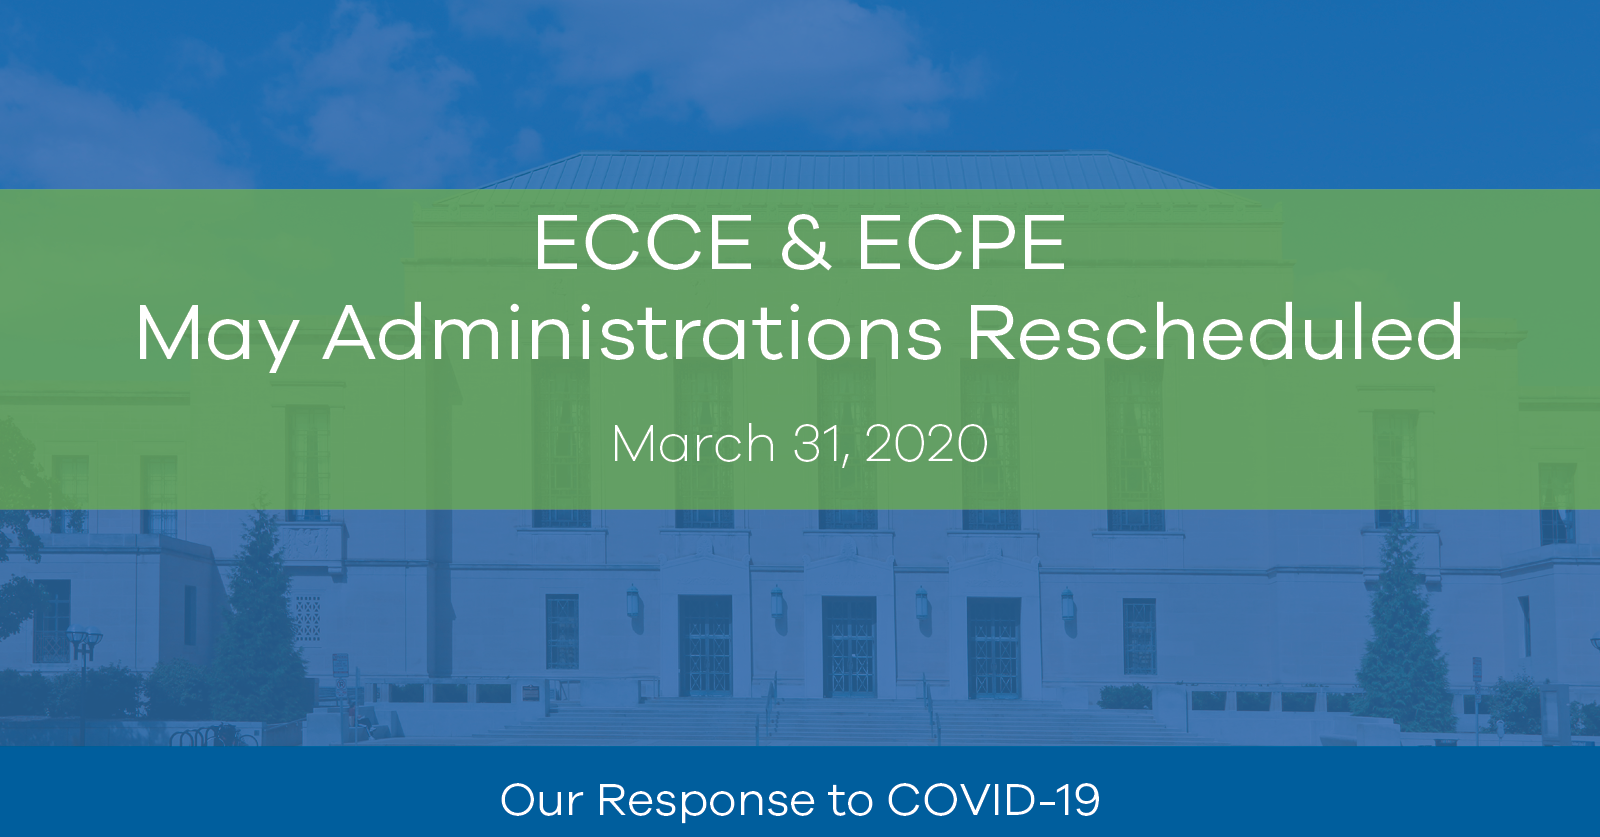 ECCE & ECPE May Administrations Rescheduled